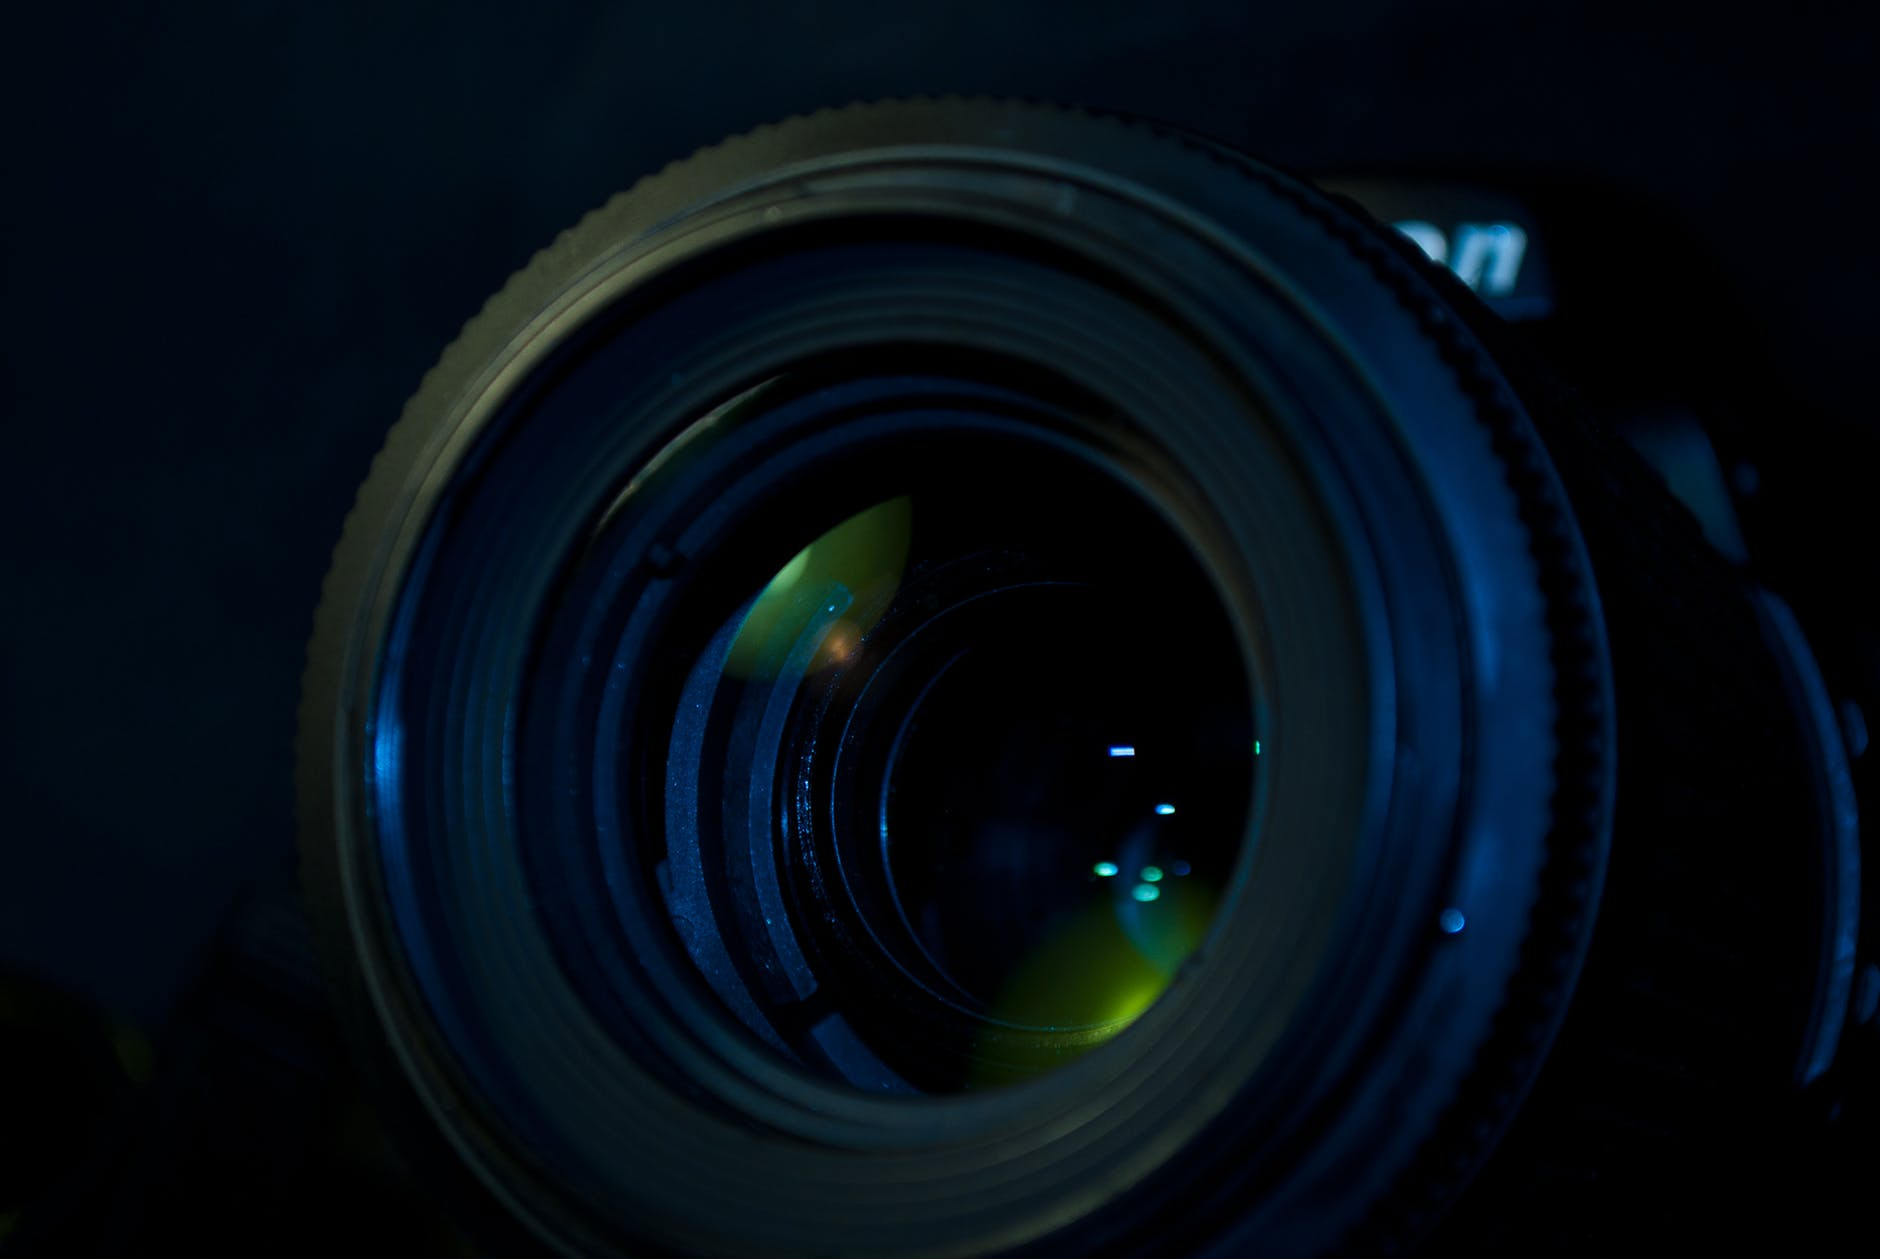 Camera Placed by Employee Captures Illicit Images